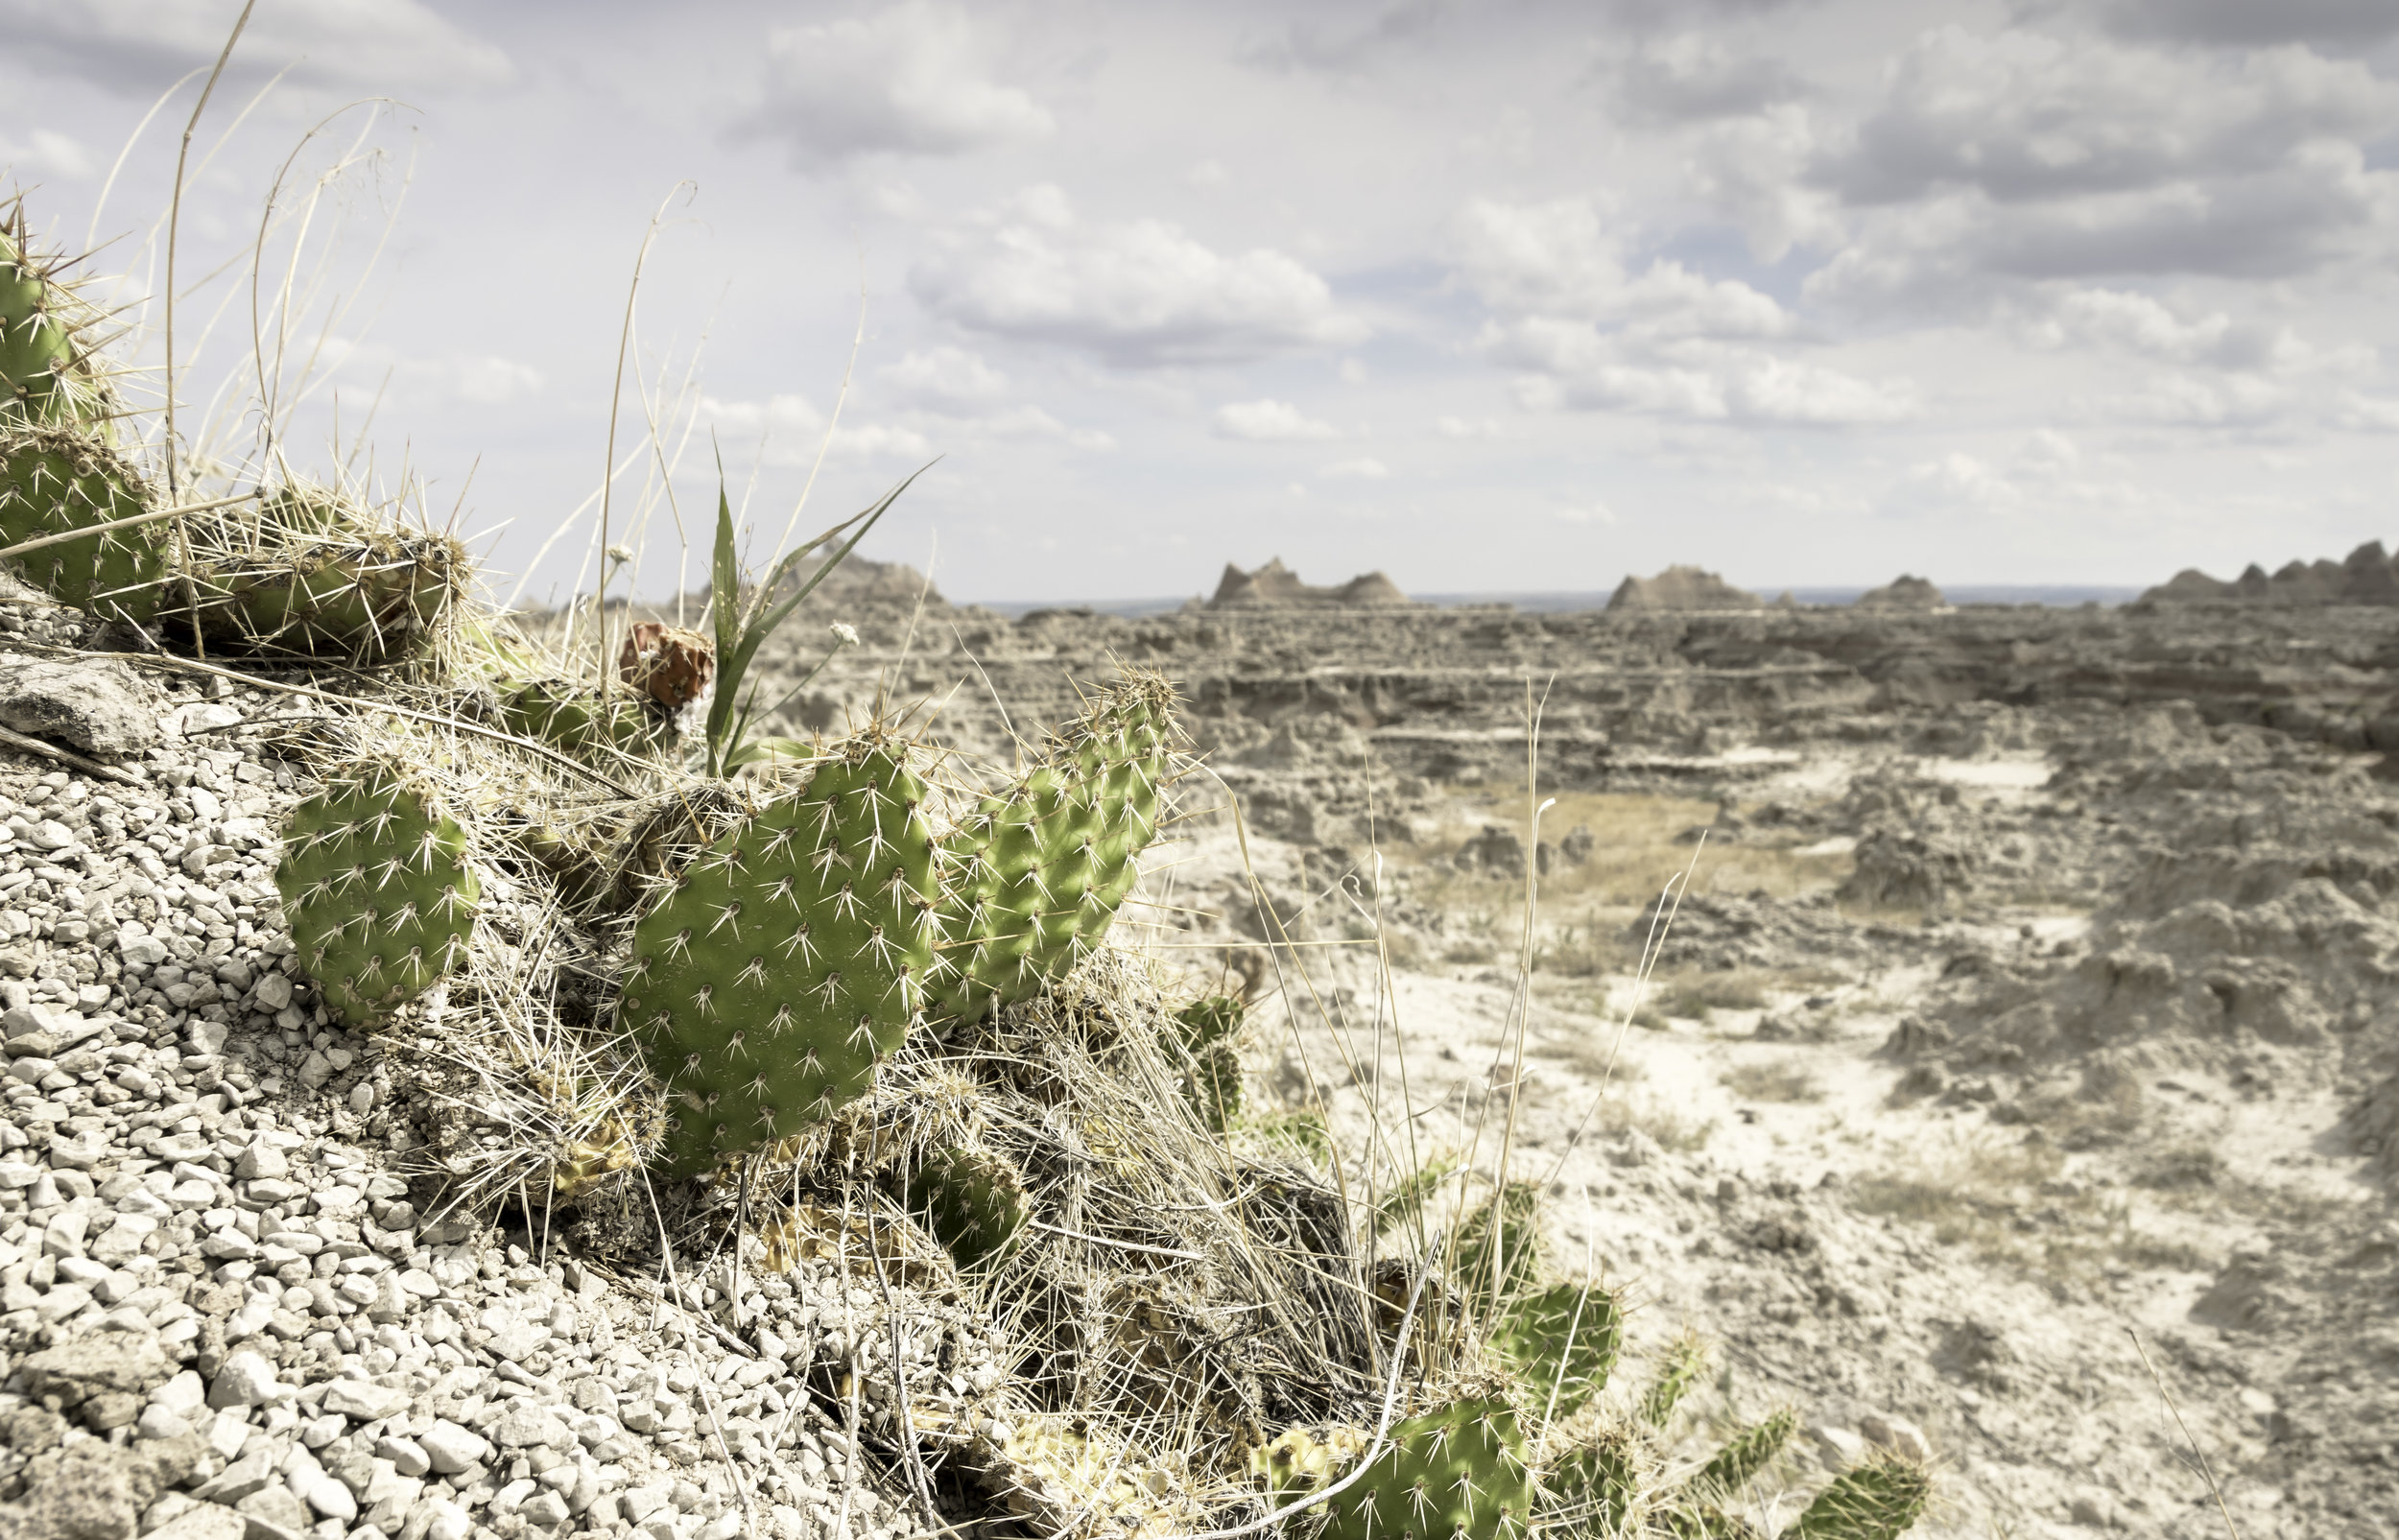 Cactus Close up.jpg